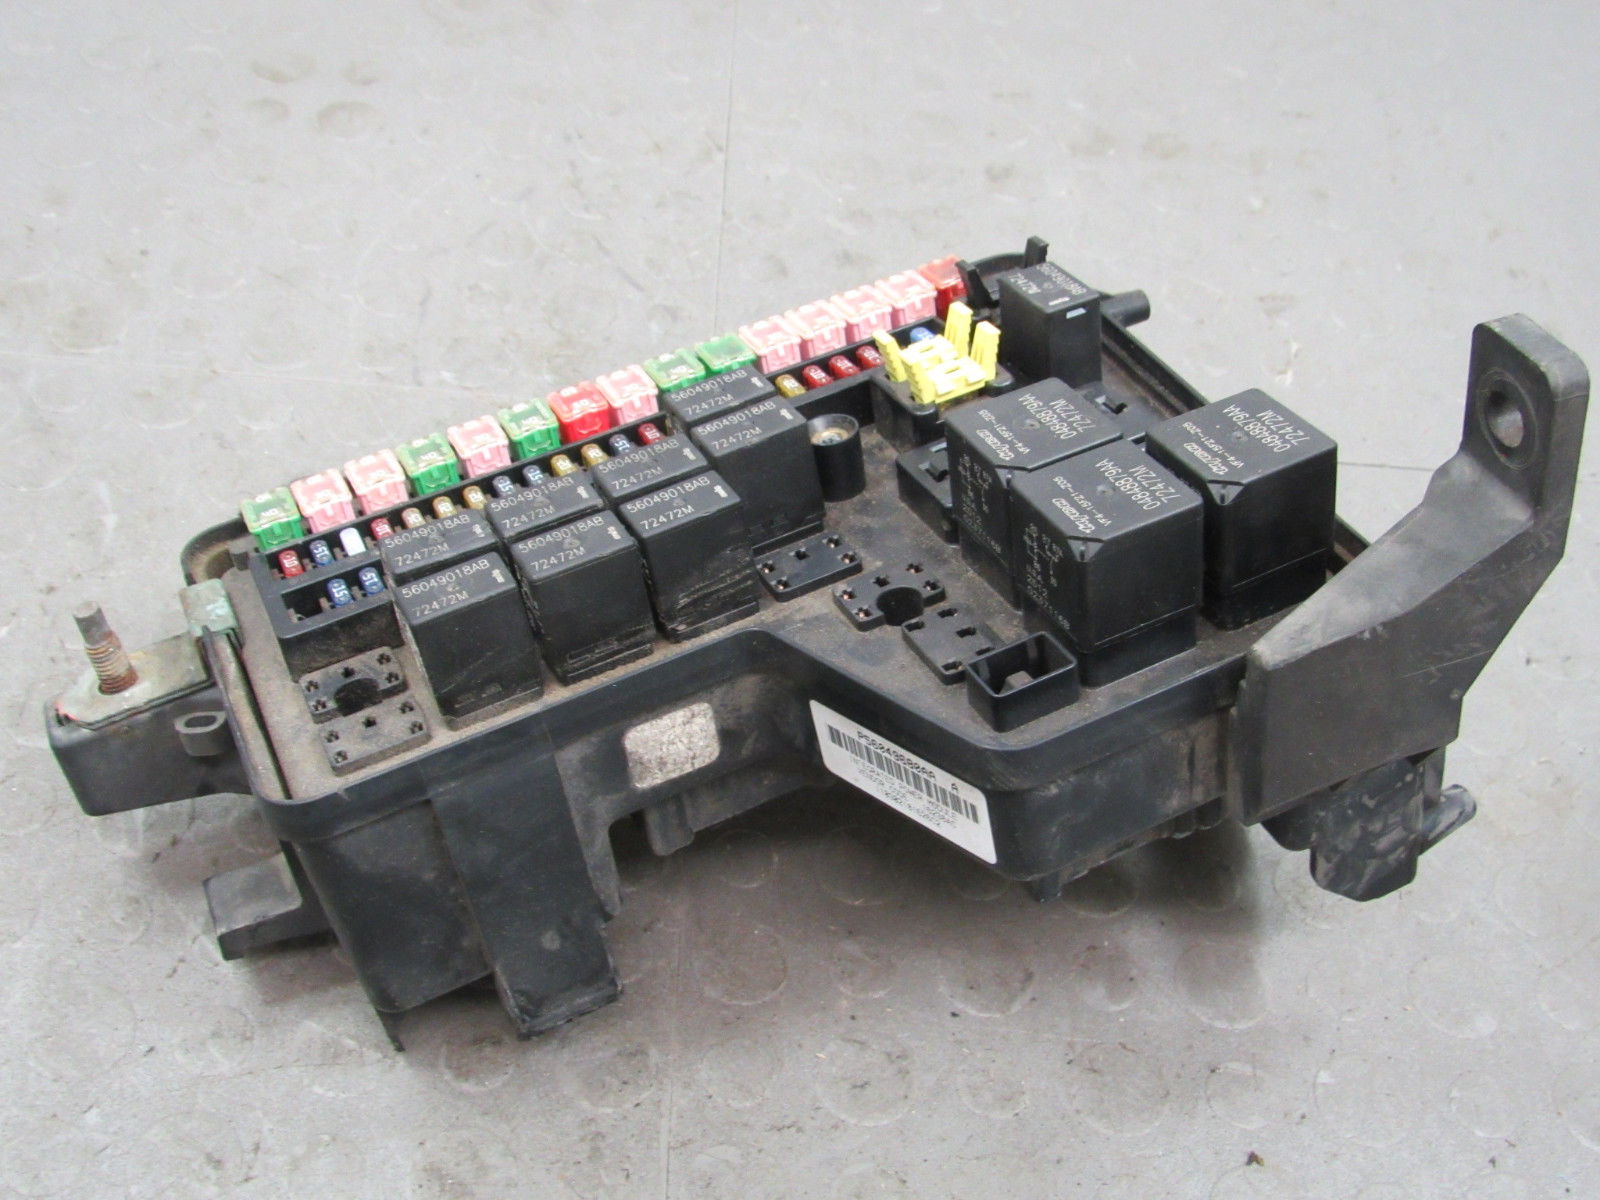 02-03 Dodge Ram Truck Integrated Power Module Fuse Box Block ... on 96 dodge ram fuse box, 06 dodge ram fuse box, dodge ram 1500 fuse box, 97 dodge ram fuse box, 02 dodge ram fuse box, dodge ram 2500 fuse box, 2001 dodge caravan fuse box, 99 dodge ram fuse box, 05 dodge ram fuse box, 2003 dodge fuse box, 94 dodge ram fuse box, dodge truck fuse box, 01 dodge ram fuse box, 99 chevy suburban fuse box, 04 dodge ram fuse box, 95 dodge ram fuse box, 08 dodge ram fuse box,